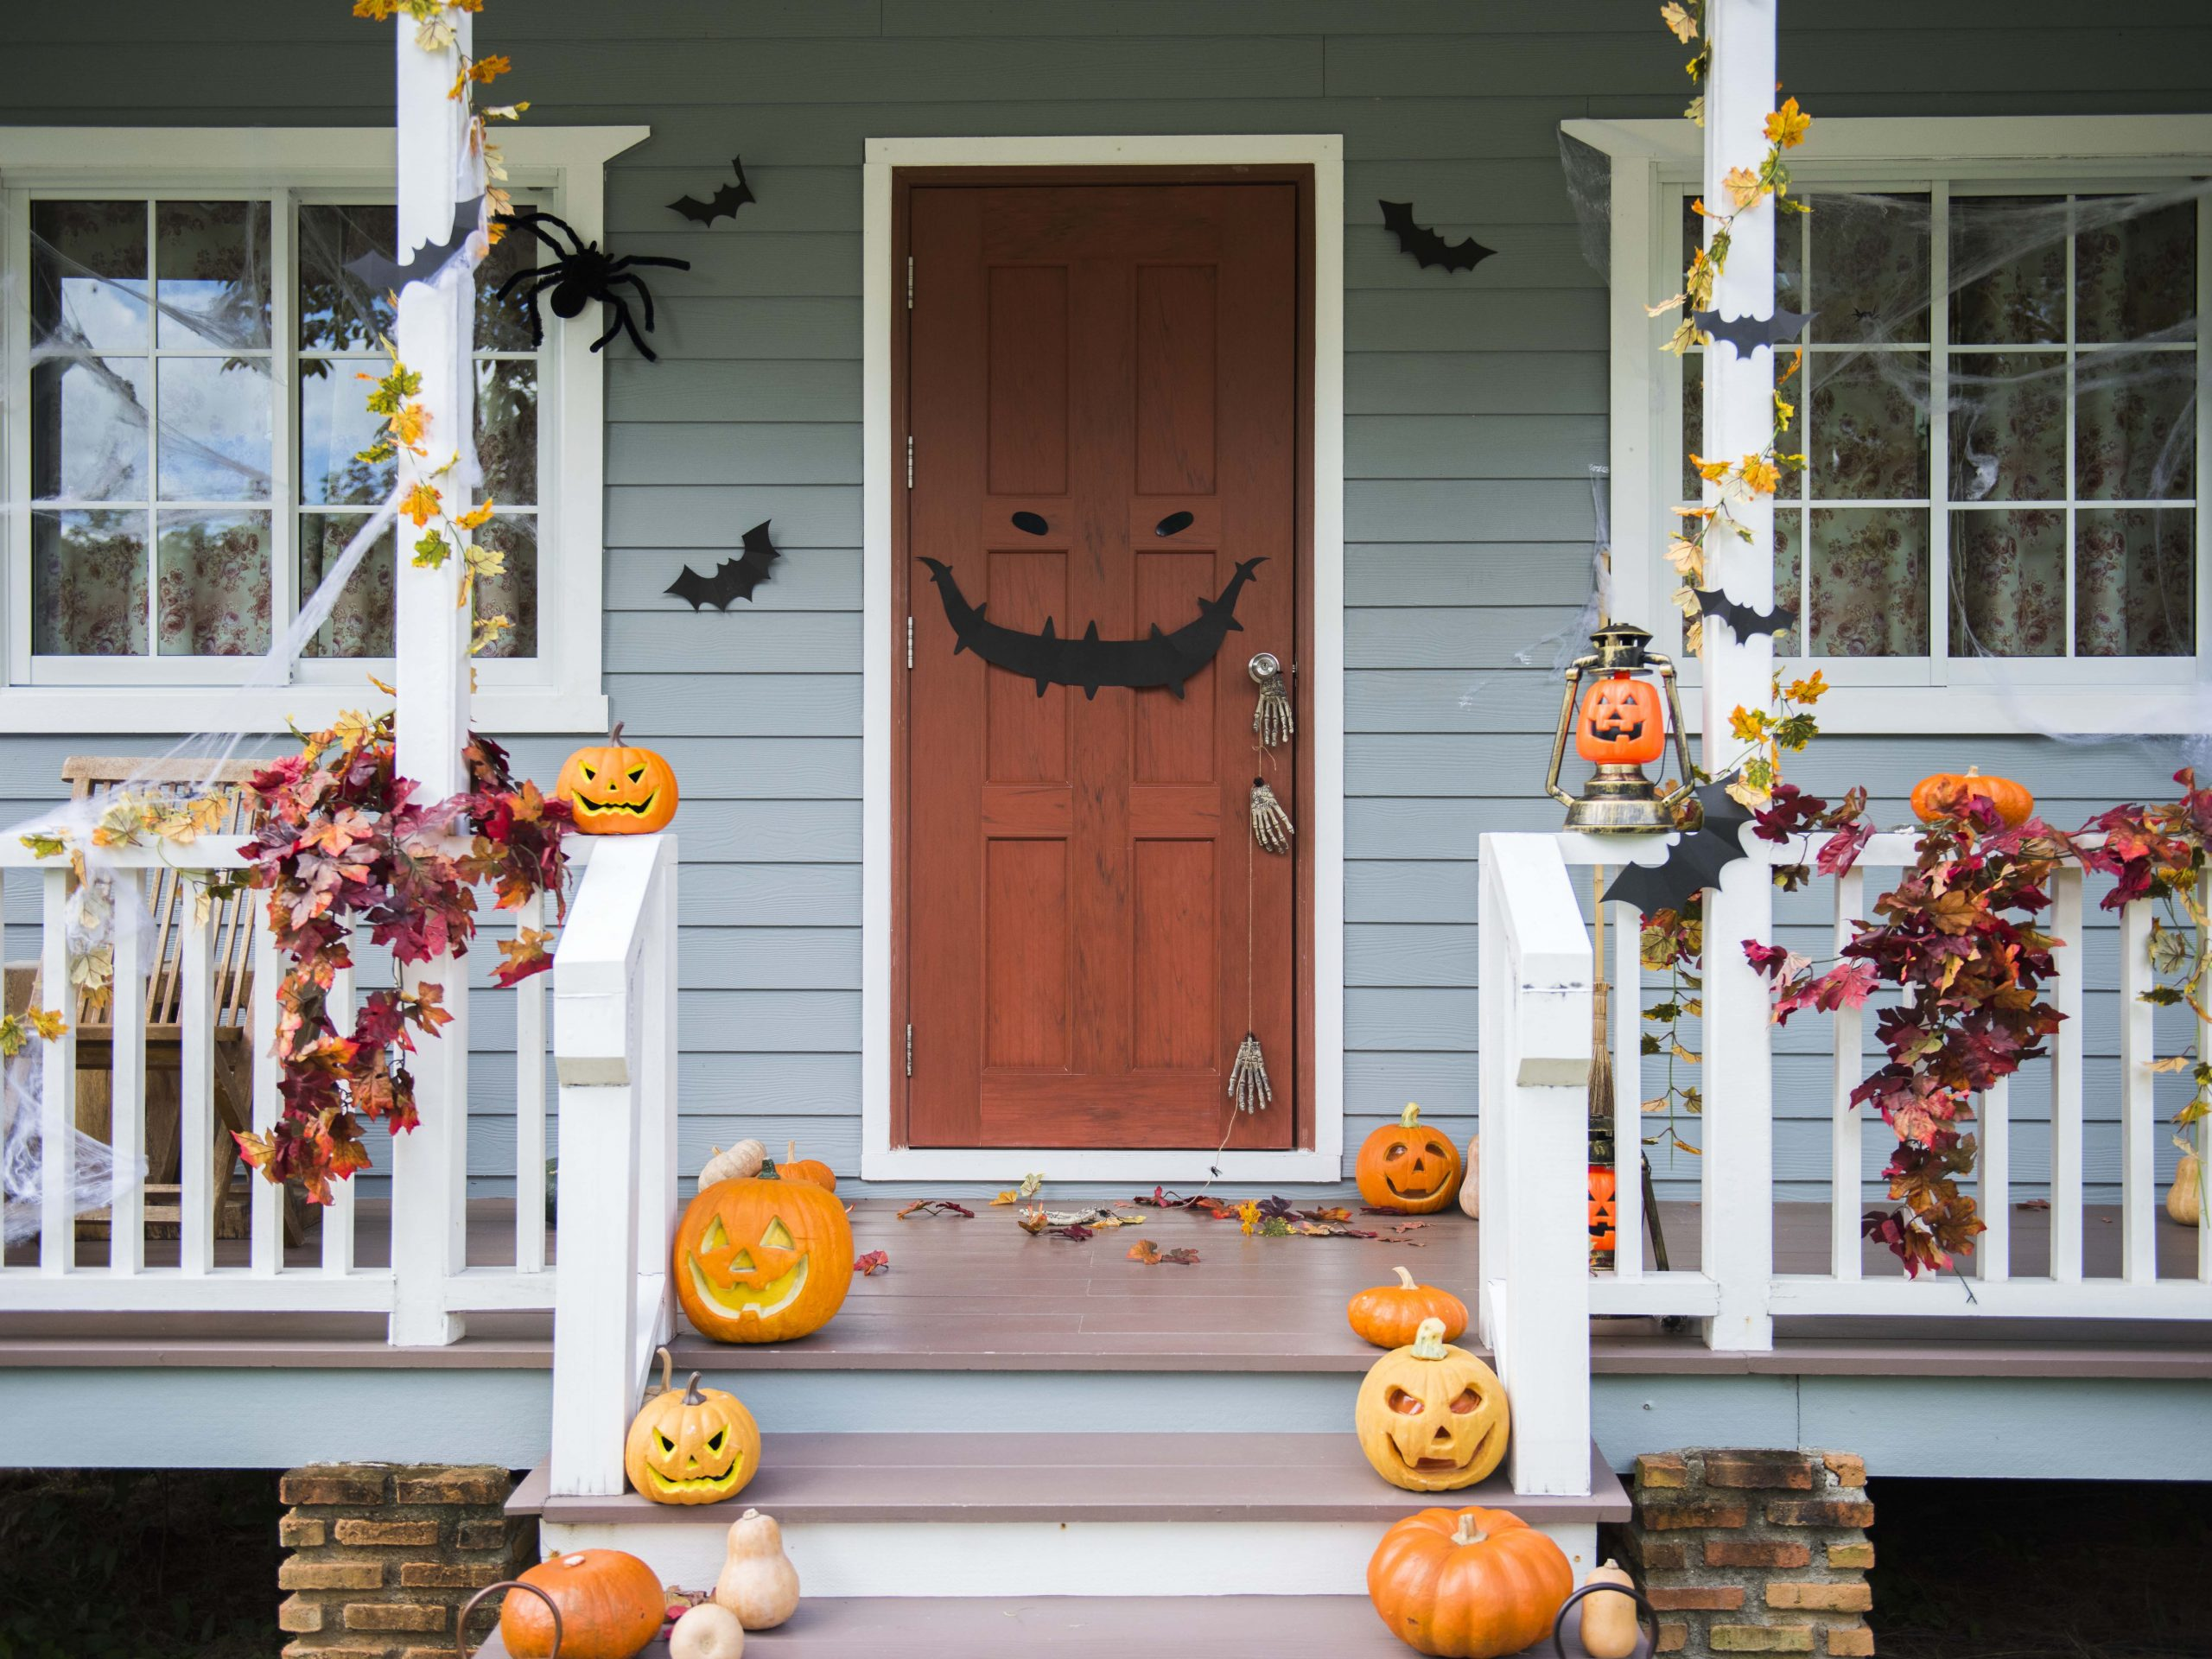 Halloween Spooky Front Porch With Pumpkins